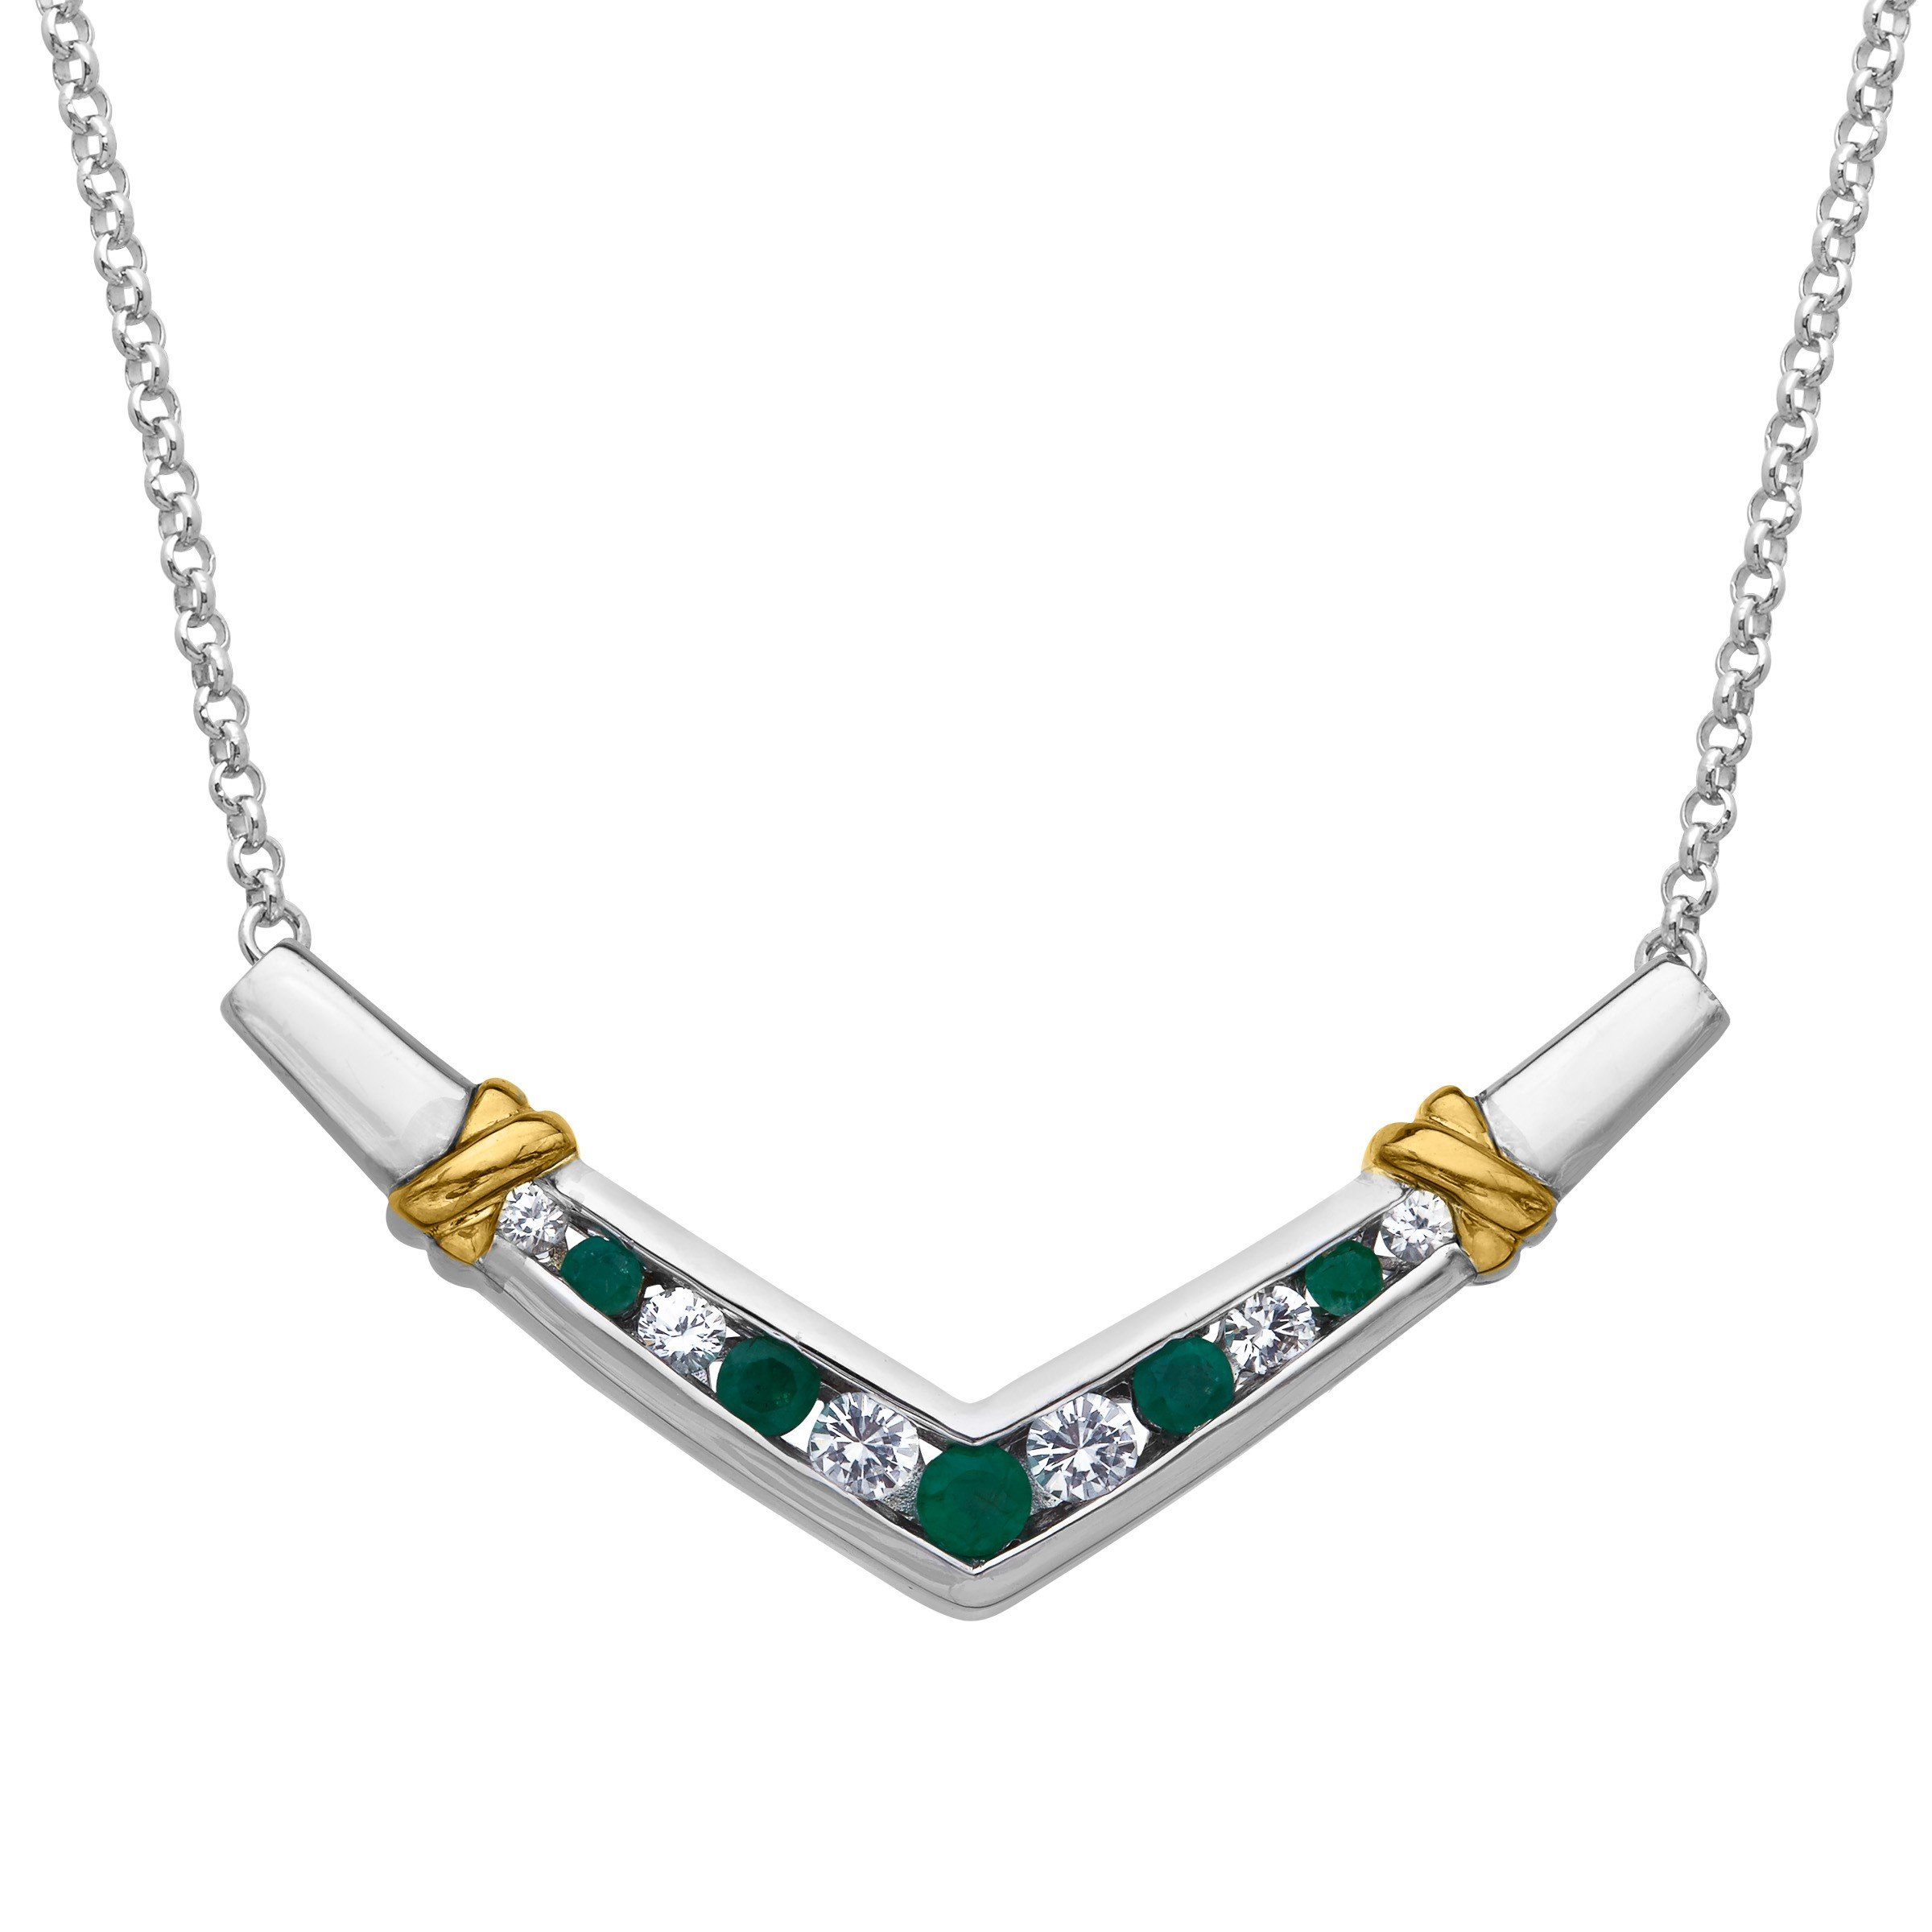 7/8 ct Natural Emerald and Created Sapphire Necklace in Sterling Silver and 14K Gold